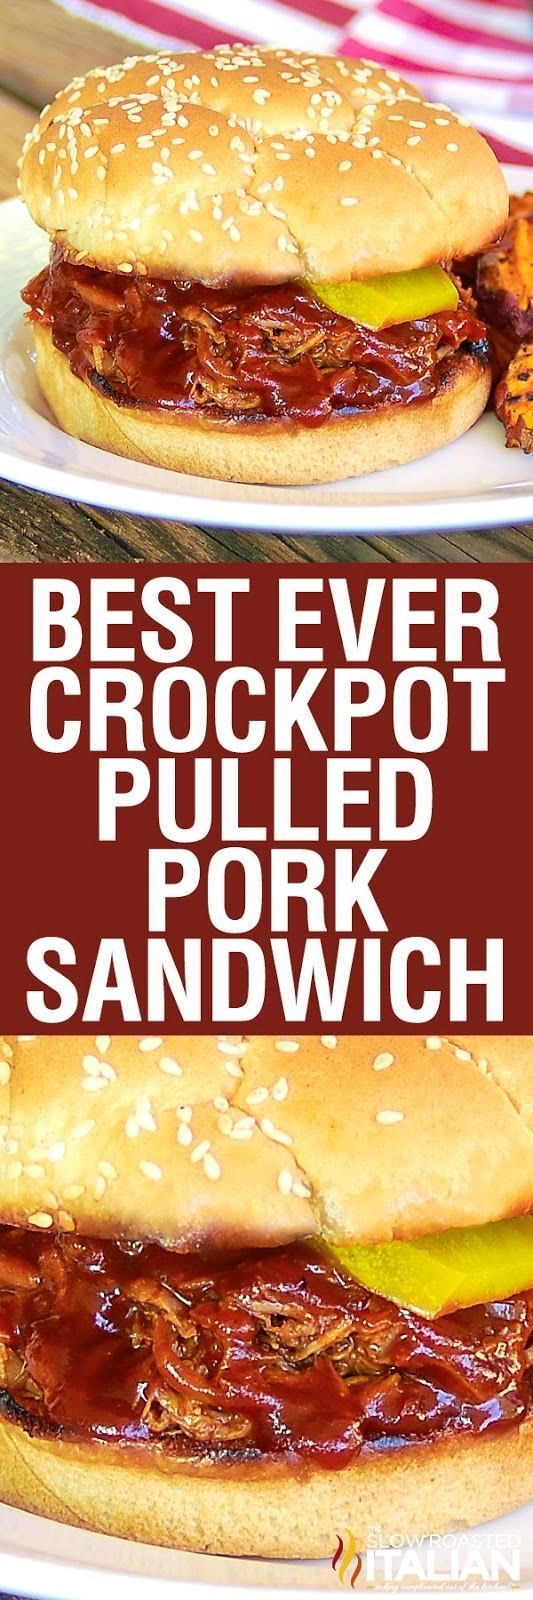 The Best Ever Simple Crockpot Pulled Pork Sandwiches are incredibly moist, tender and delicious.  Loaded with flavor from a homemade barbecue sauce and Dr. Pepper.  Dr. Pepper?  Yep.  You would never believe all the flavor that DP imparts into this pork.